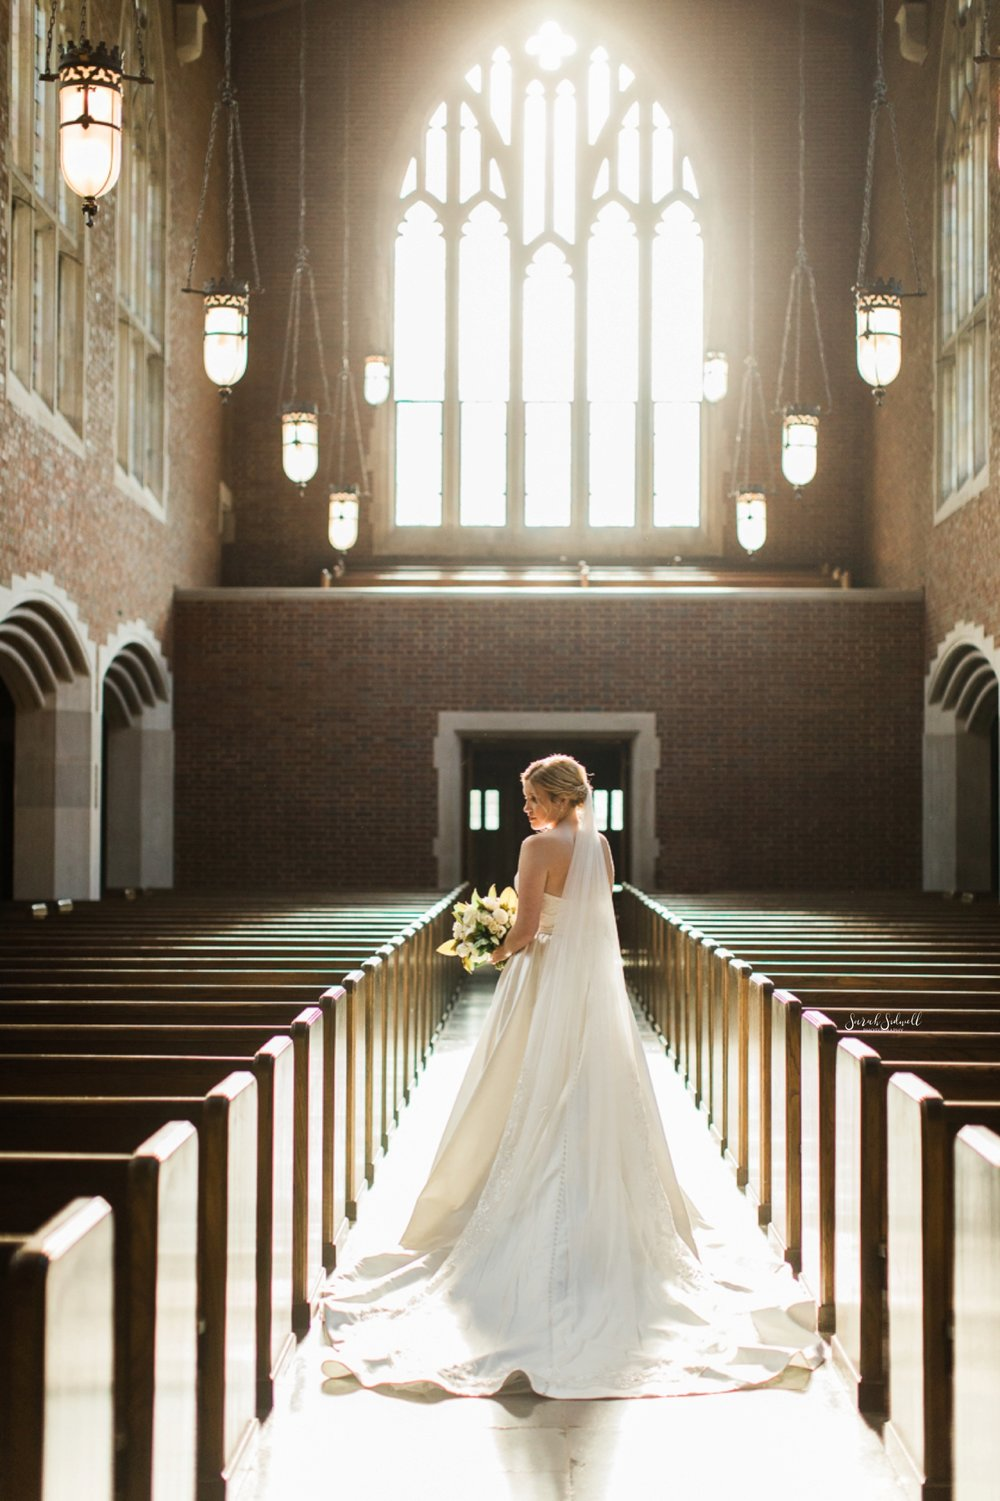 A bride stands in the aisle of a church.